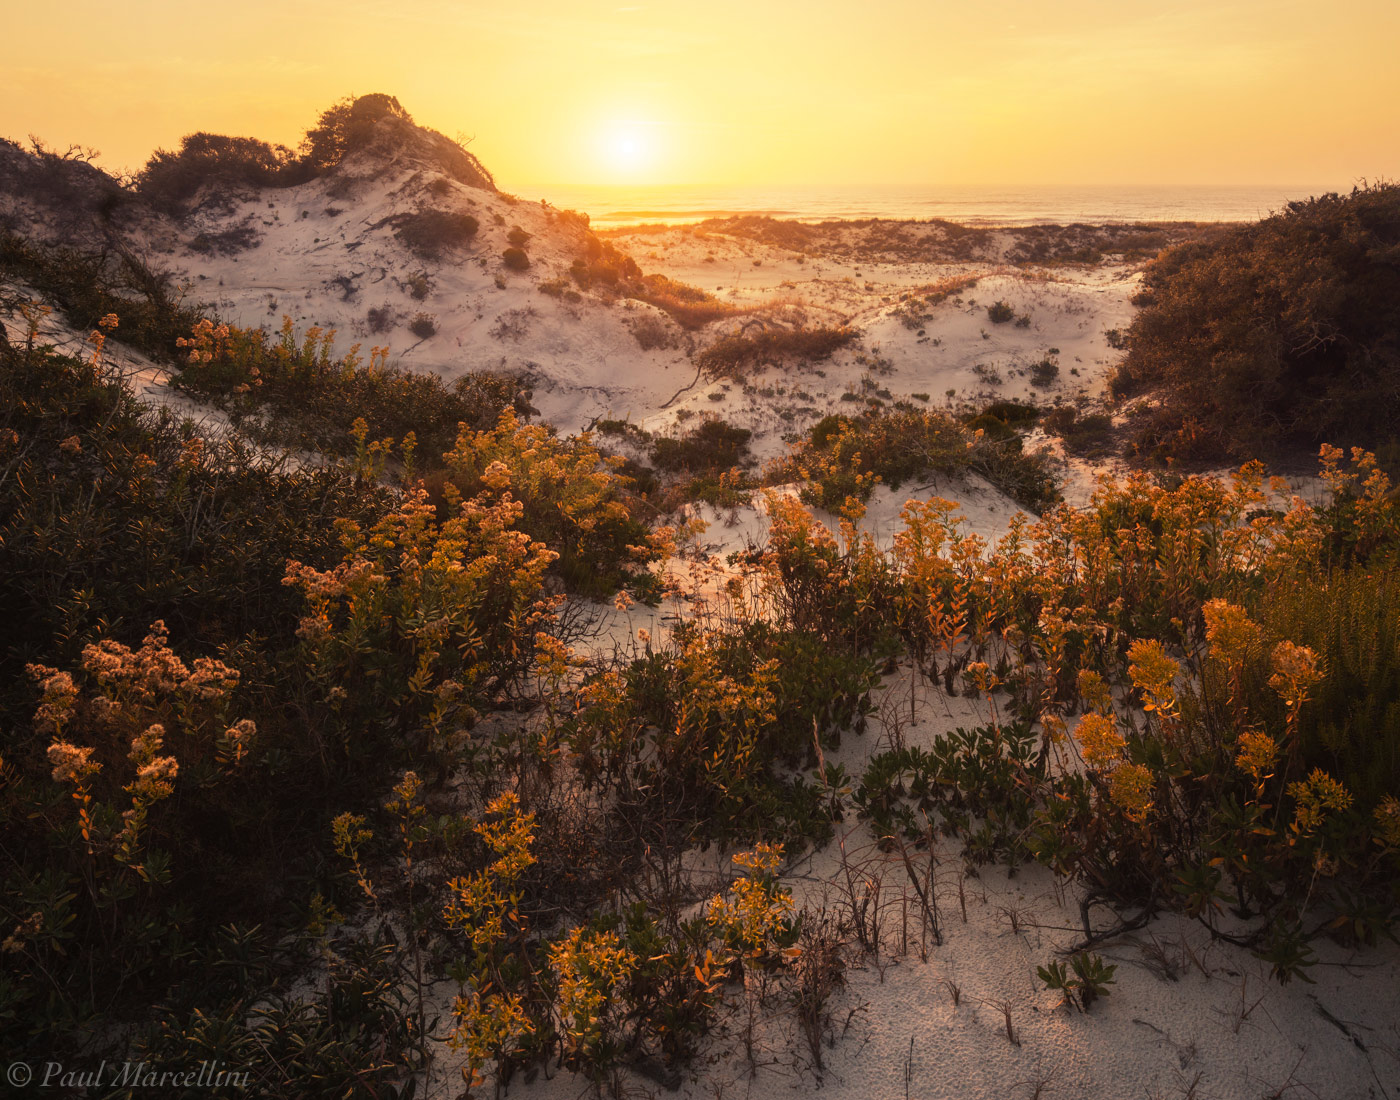 st joseph peninsula, cape san blas, florida, sand dune,sunset, flowers, photo